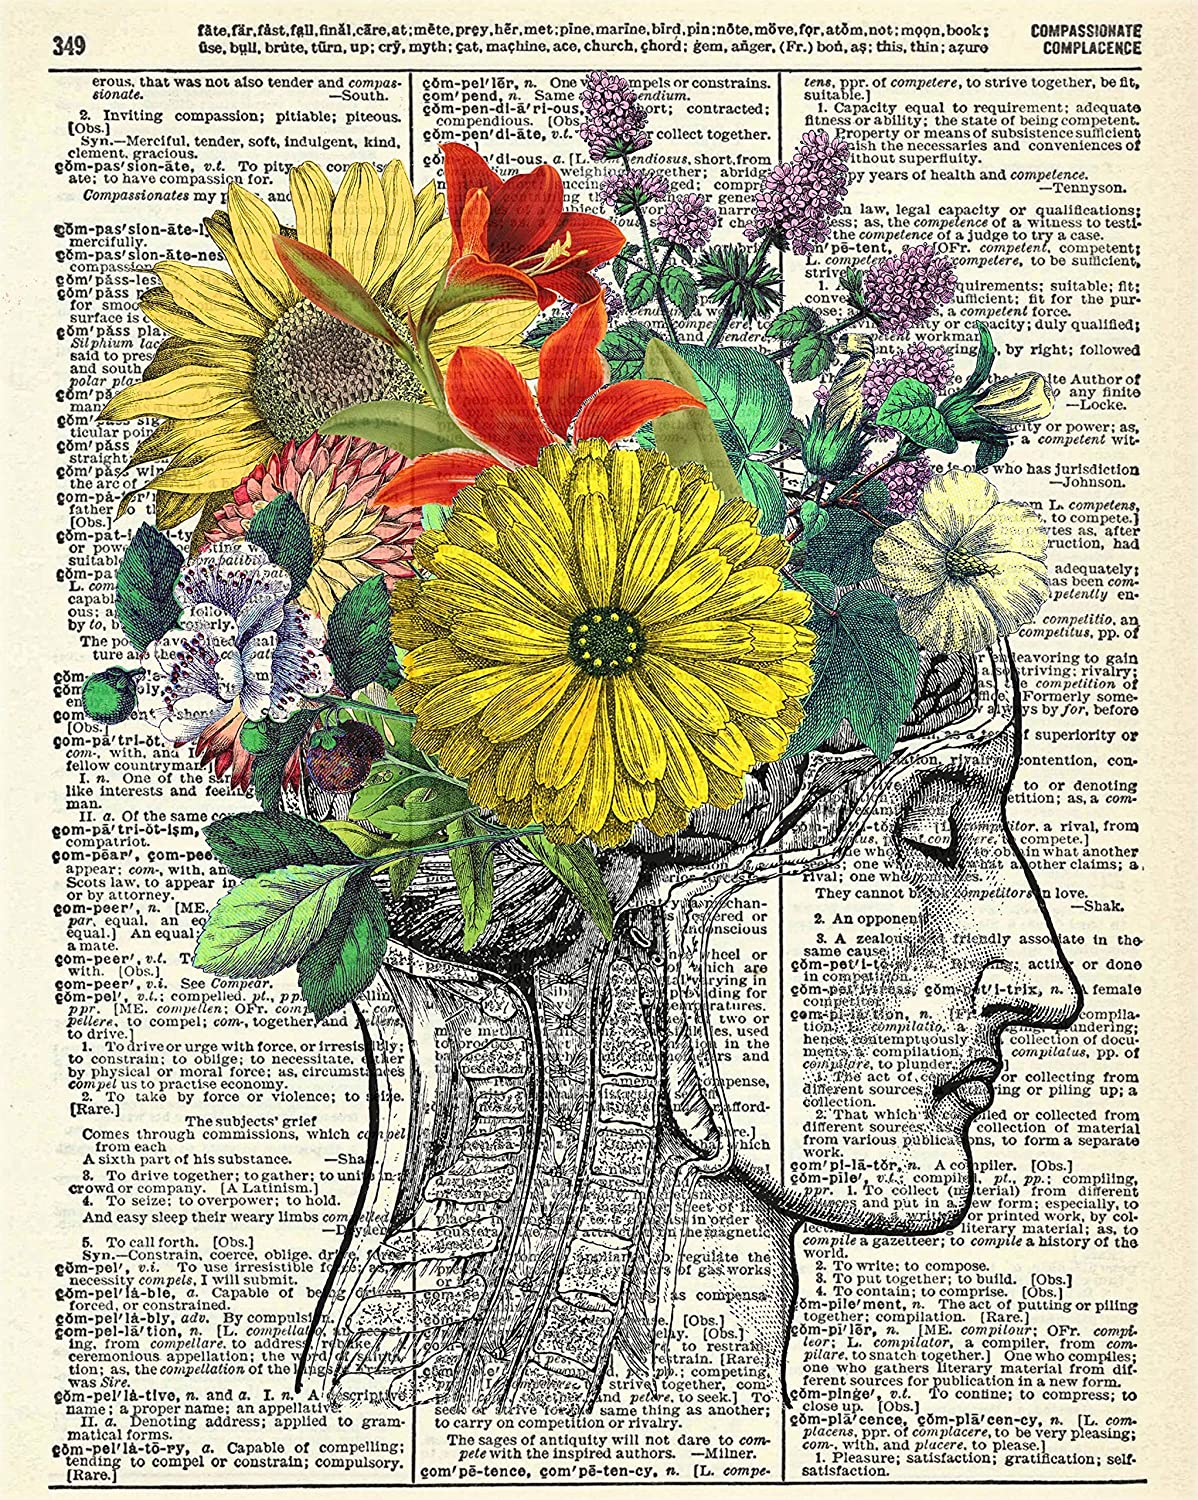 Beautiful Mind Human Anatomy With Flowers Vintage Wall Art Upcycled Dictionary Art Print Poster 8x10 inches Unframed